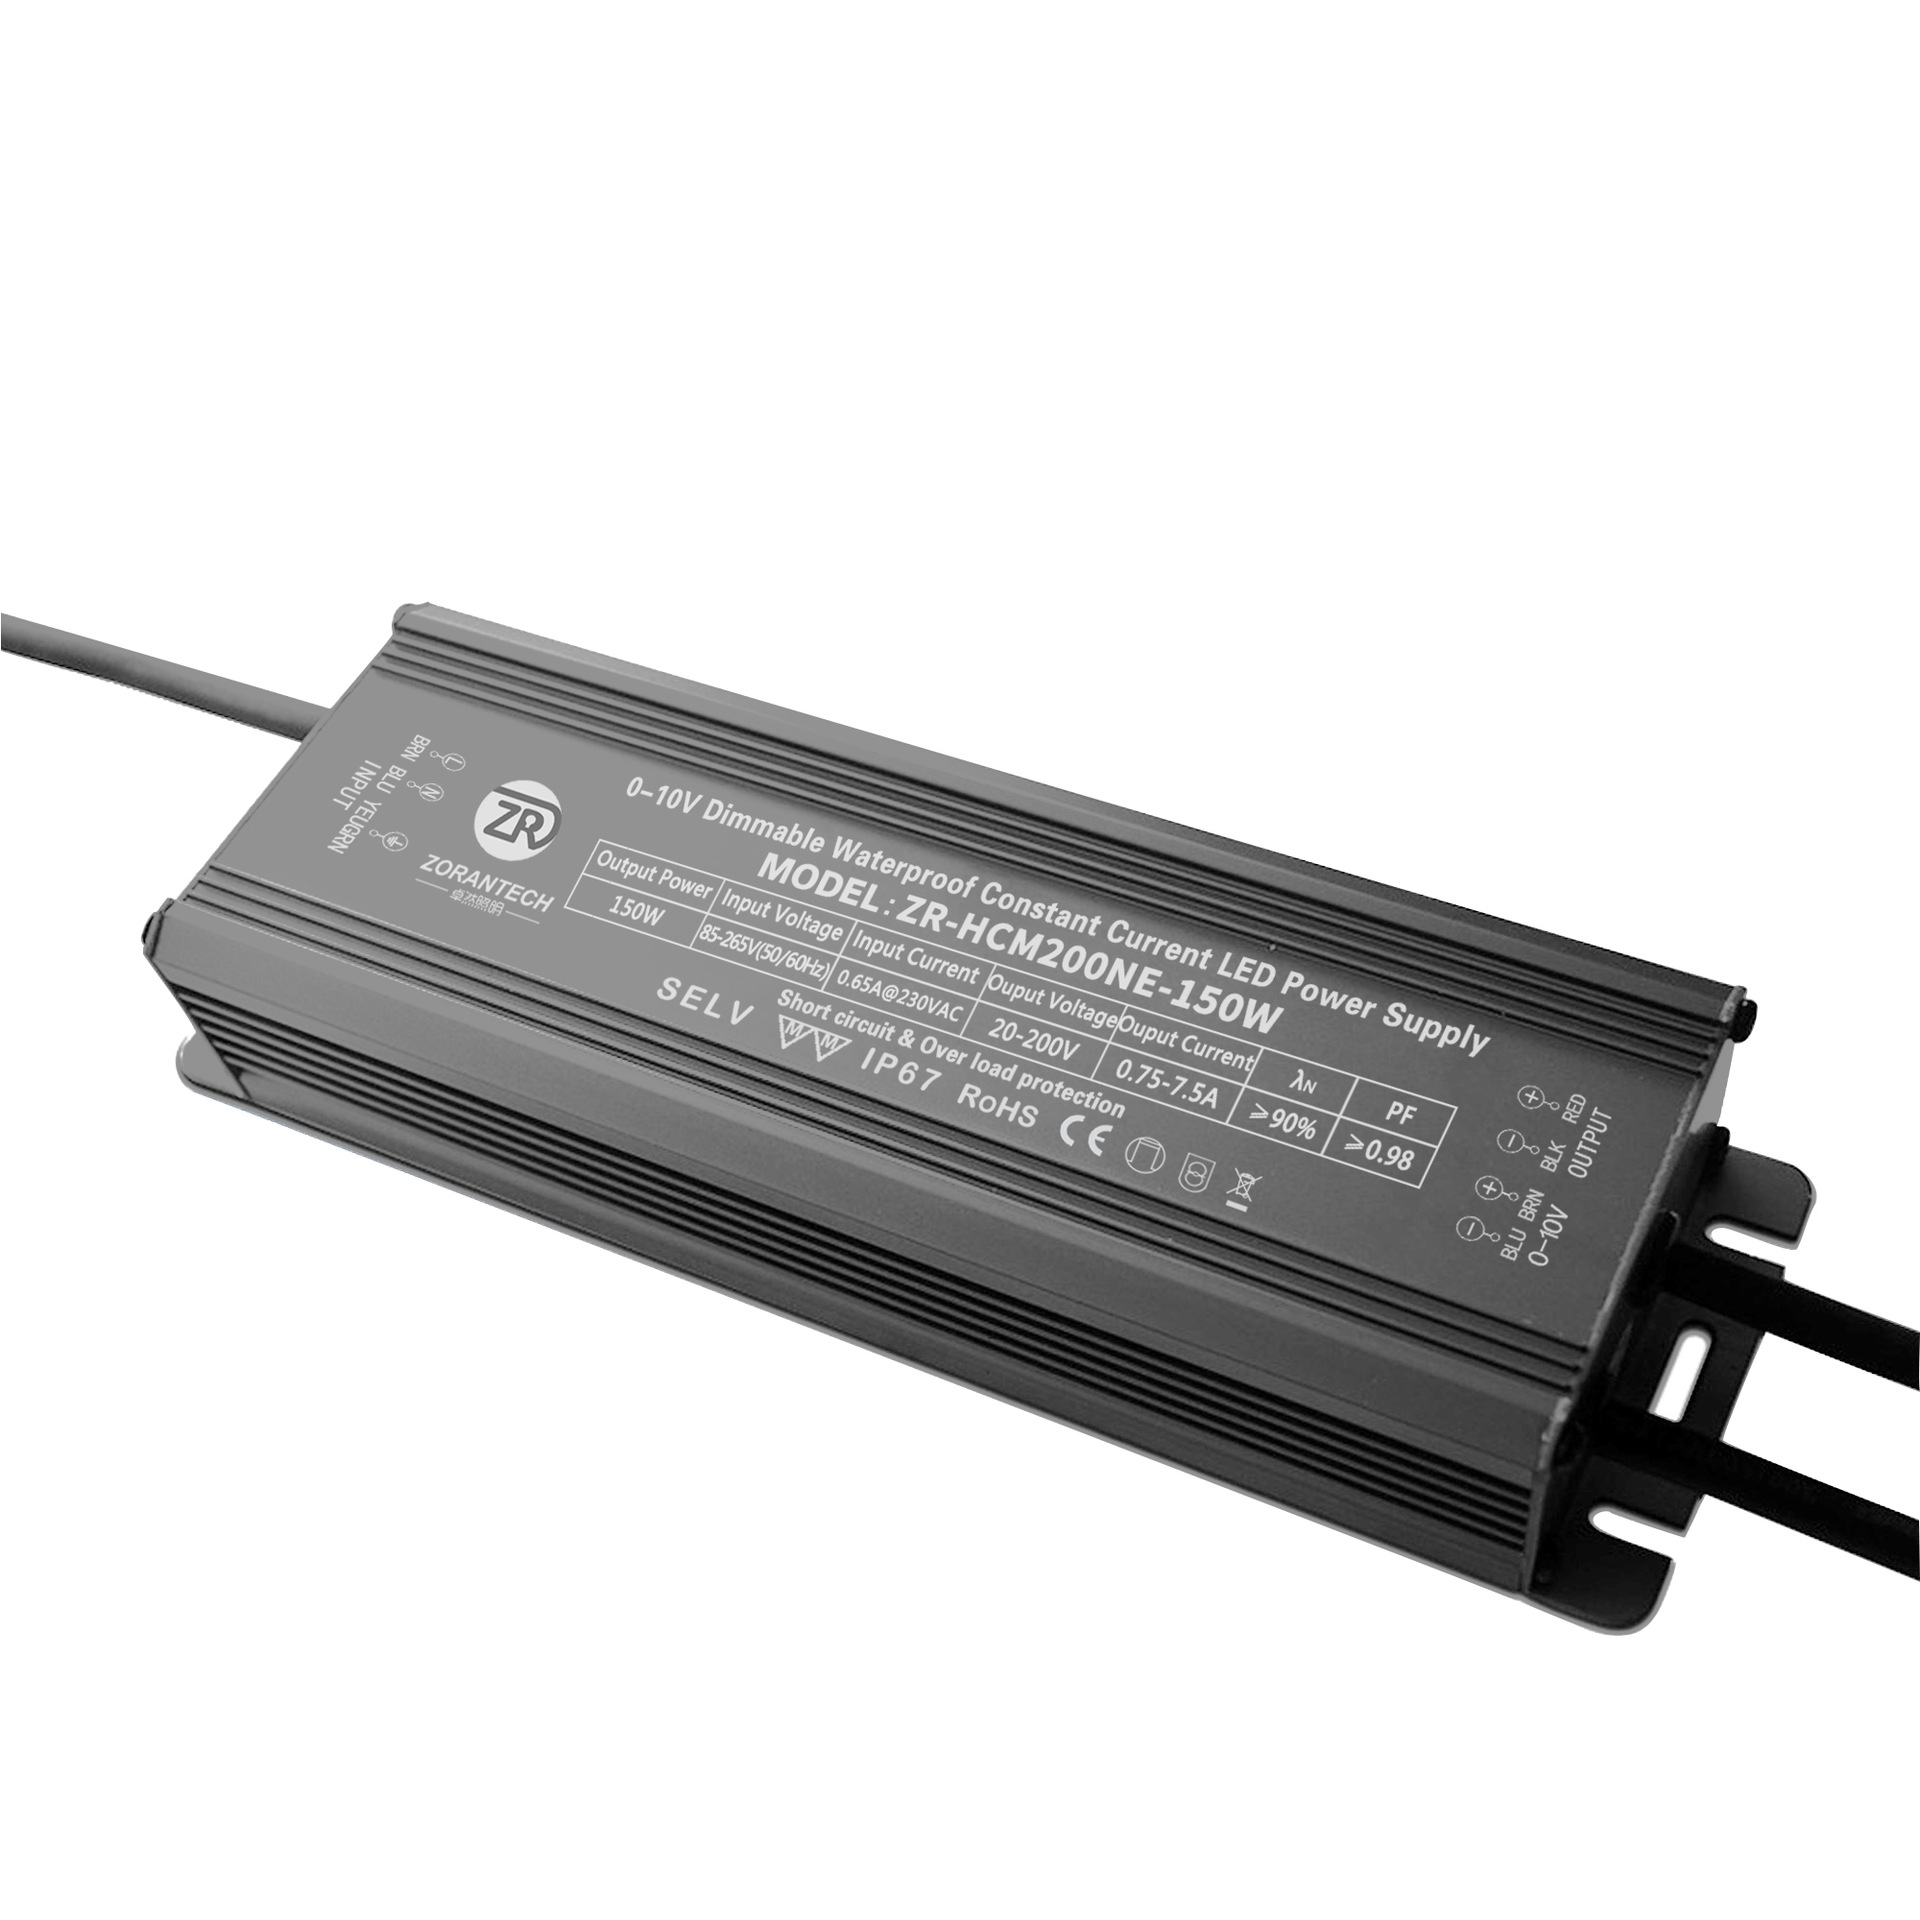 ZORANTECH New 1-10V dimming power 150W constant current PWM dimming power supply garden lamp waterpr